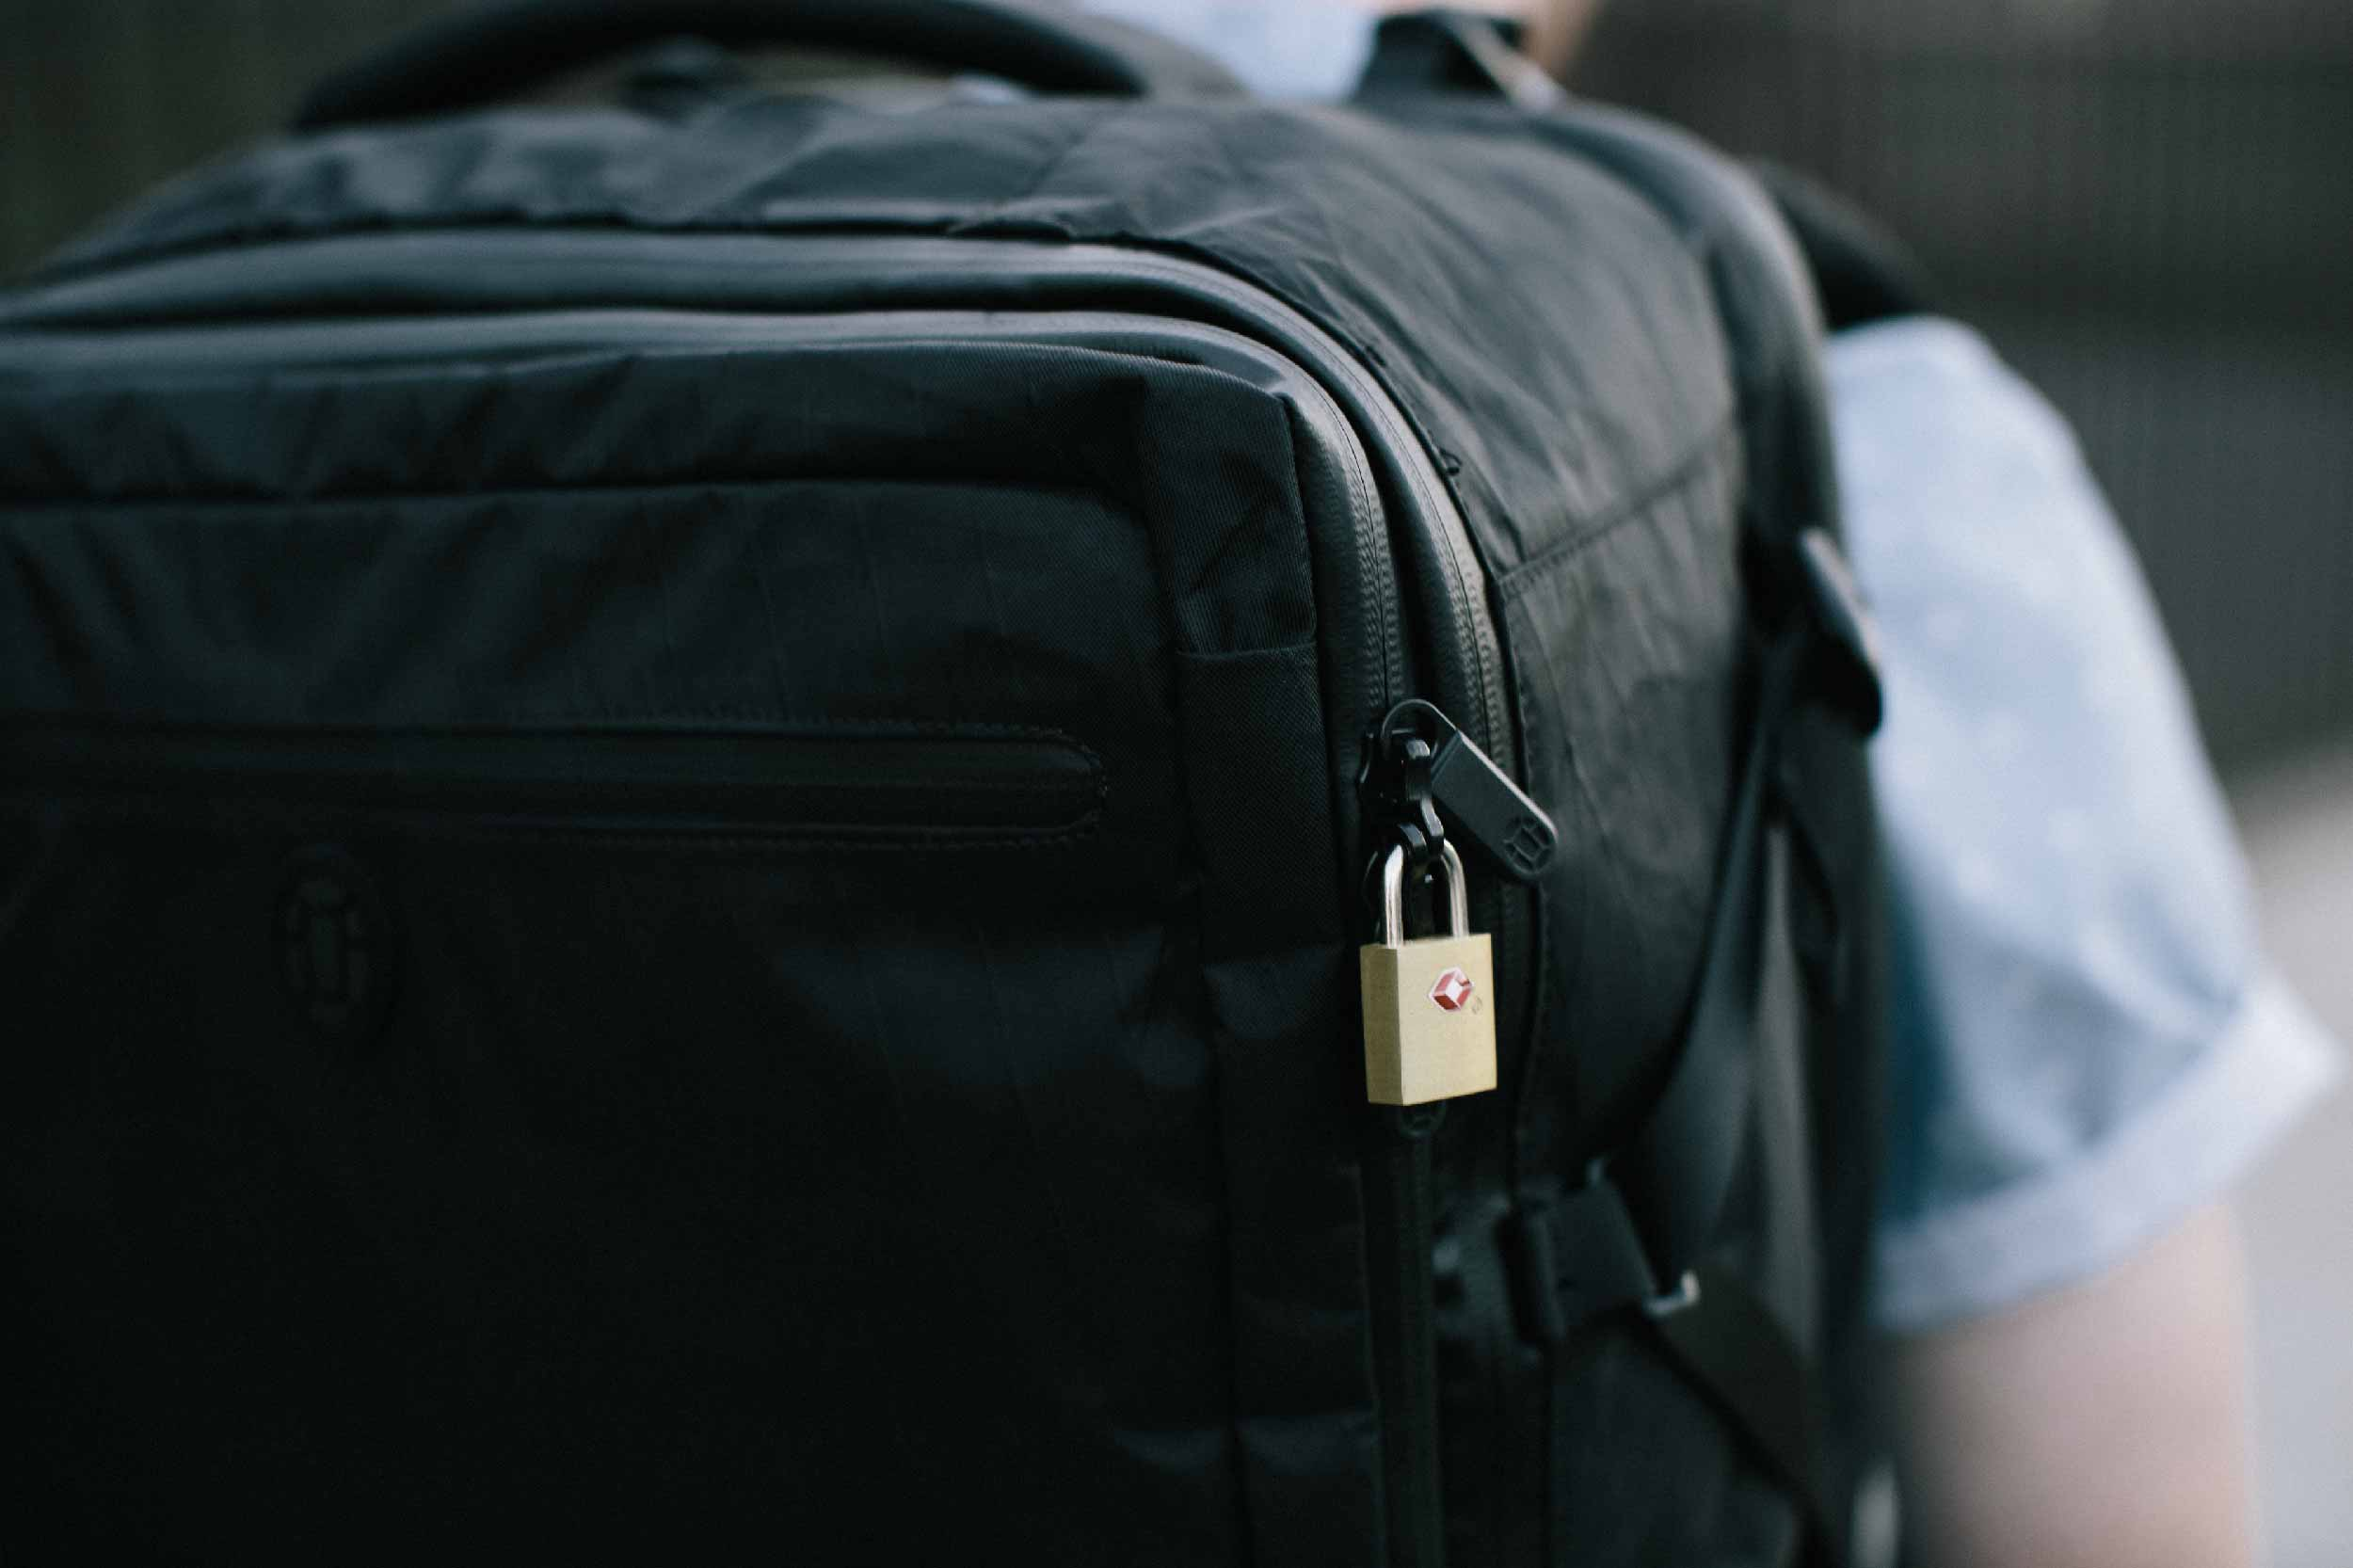 Backpack Security Packing A Theft Proof Wiring Money Safety